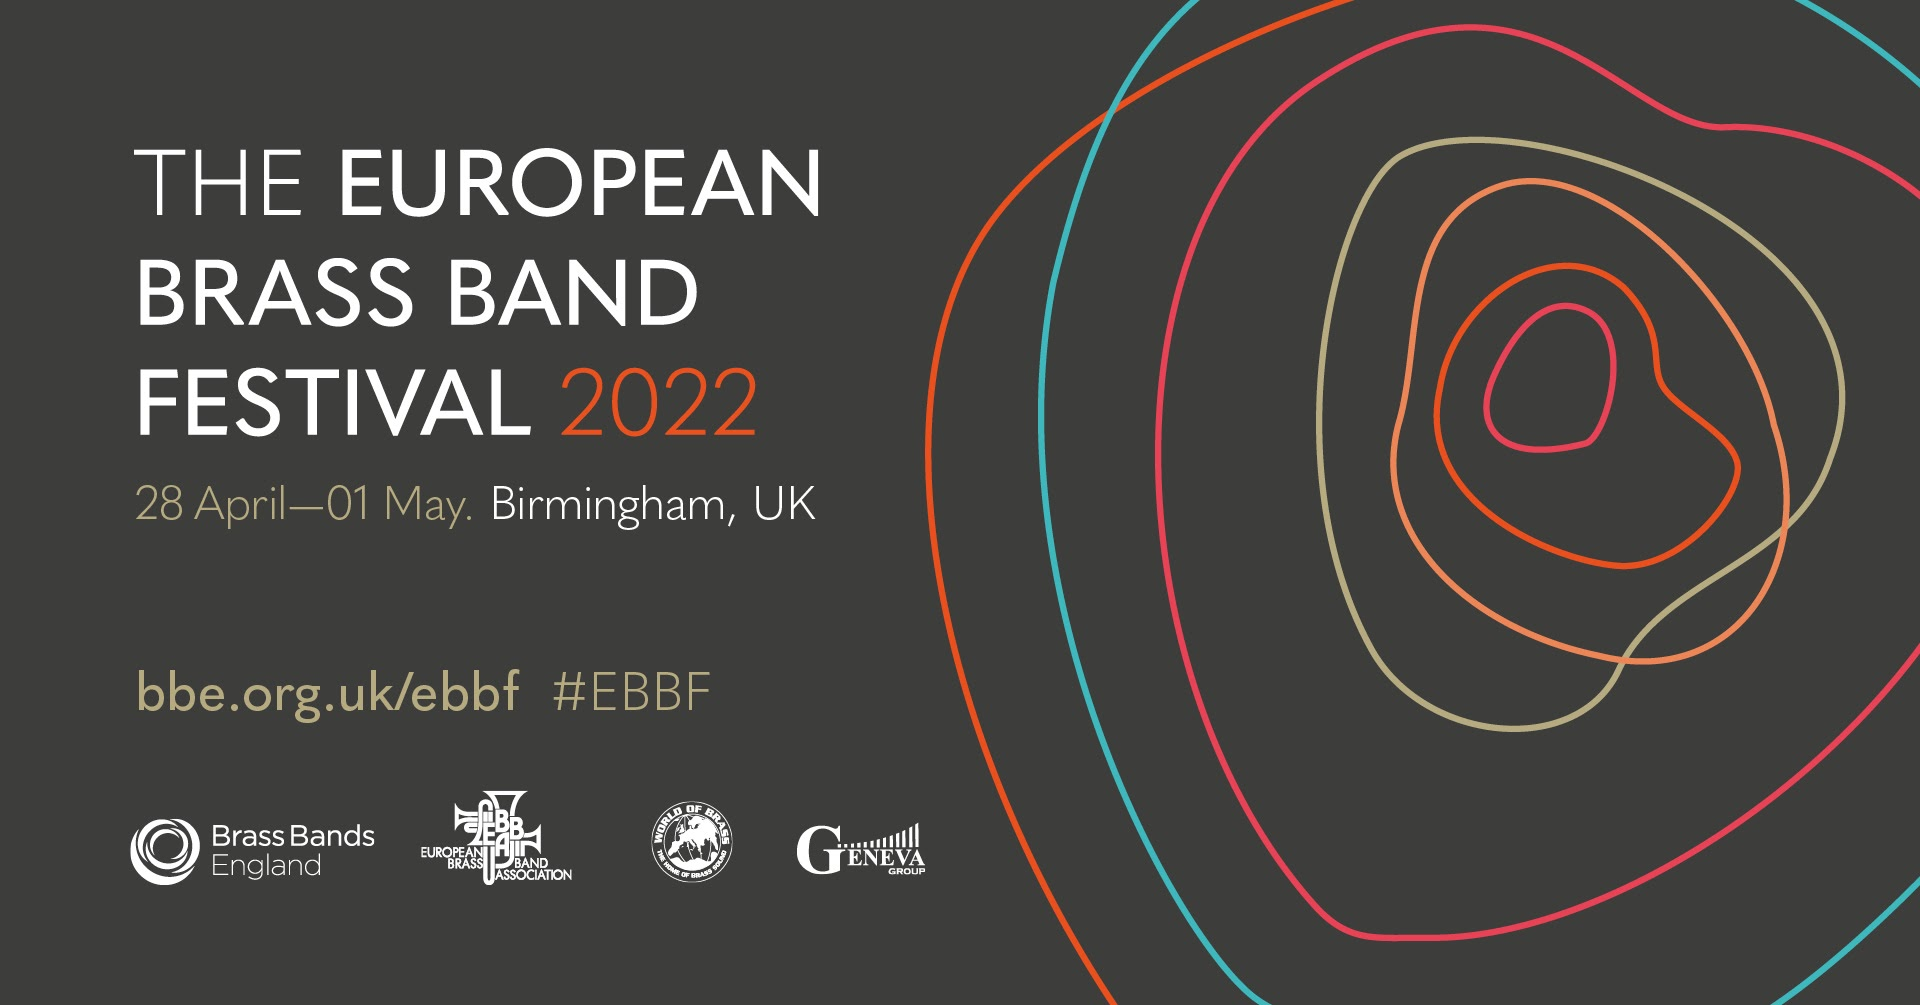 European Brass Band Championships 2022 in Birmingham, England, and festival events